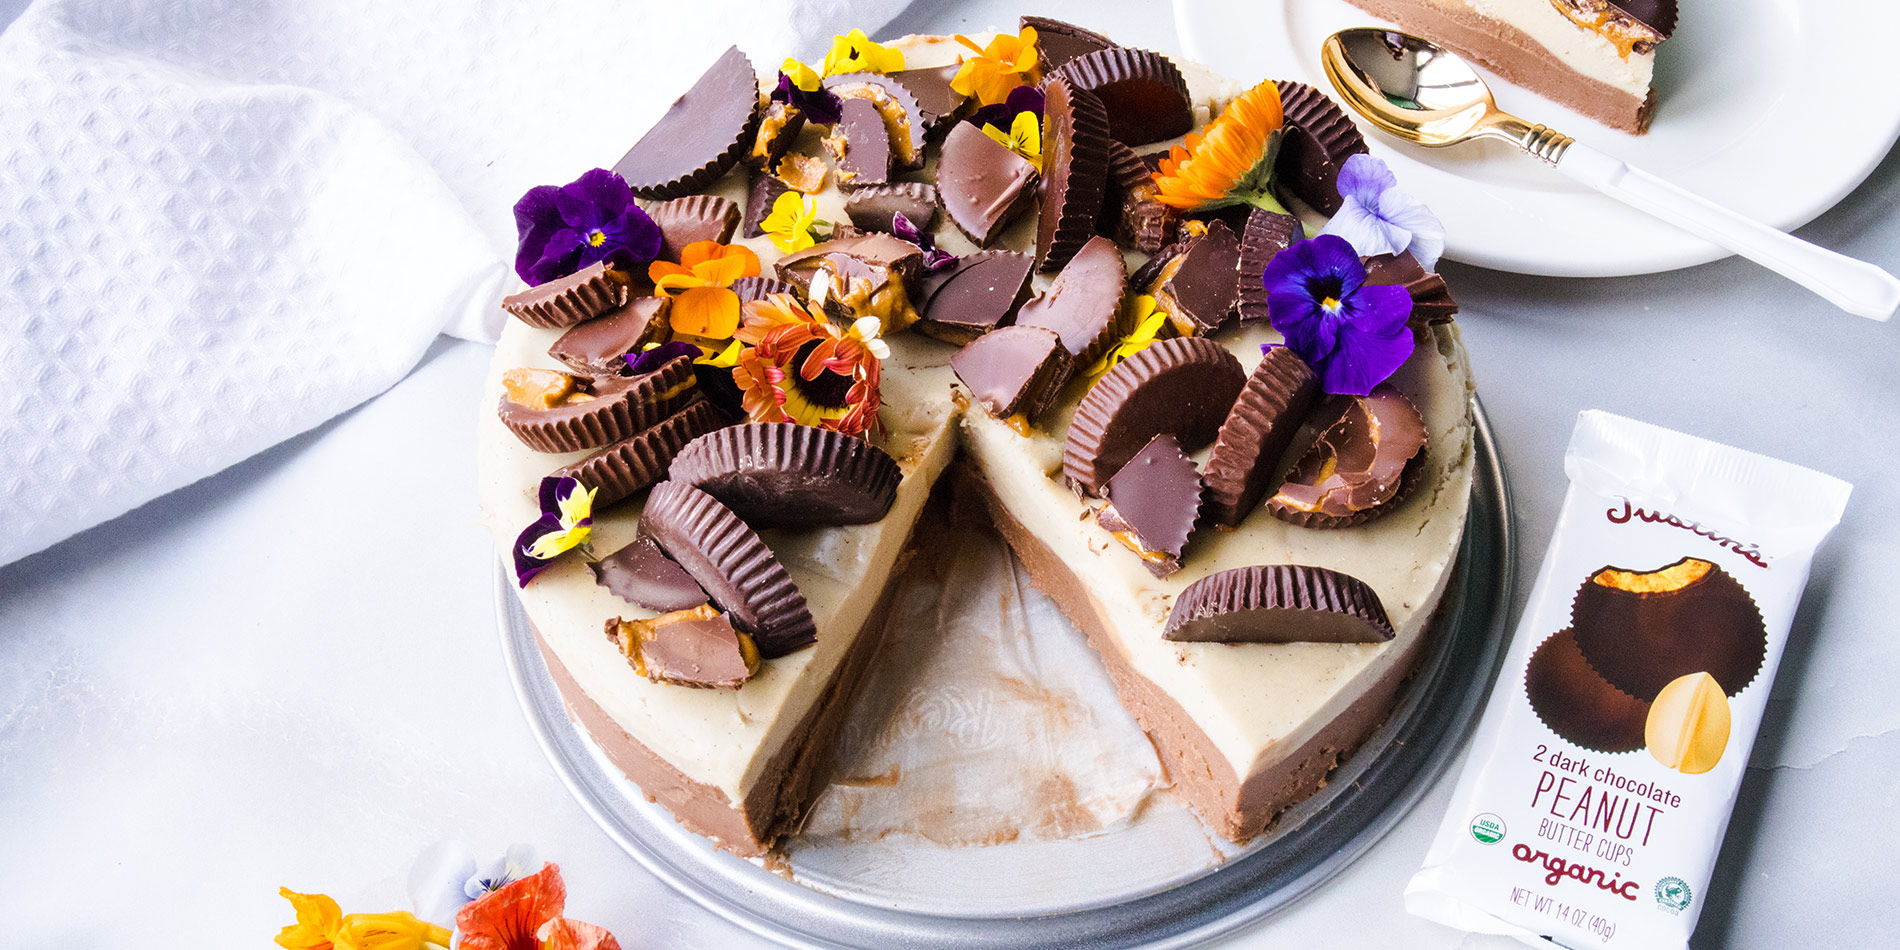 Peanut Butter Chocolate Cashew Cheesecake on a gray tray with a slice taken out and placed on top right side of the photo